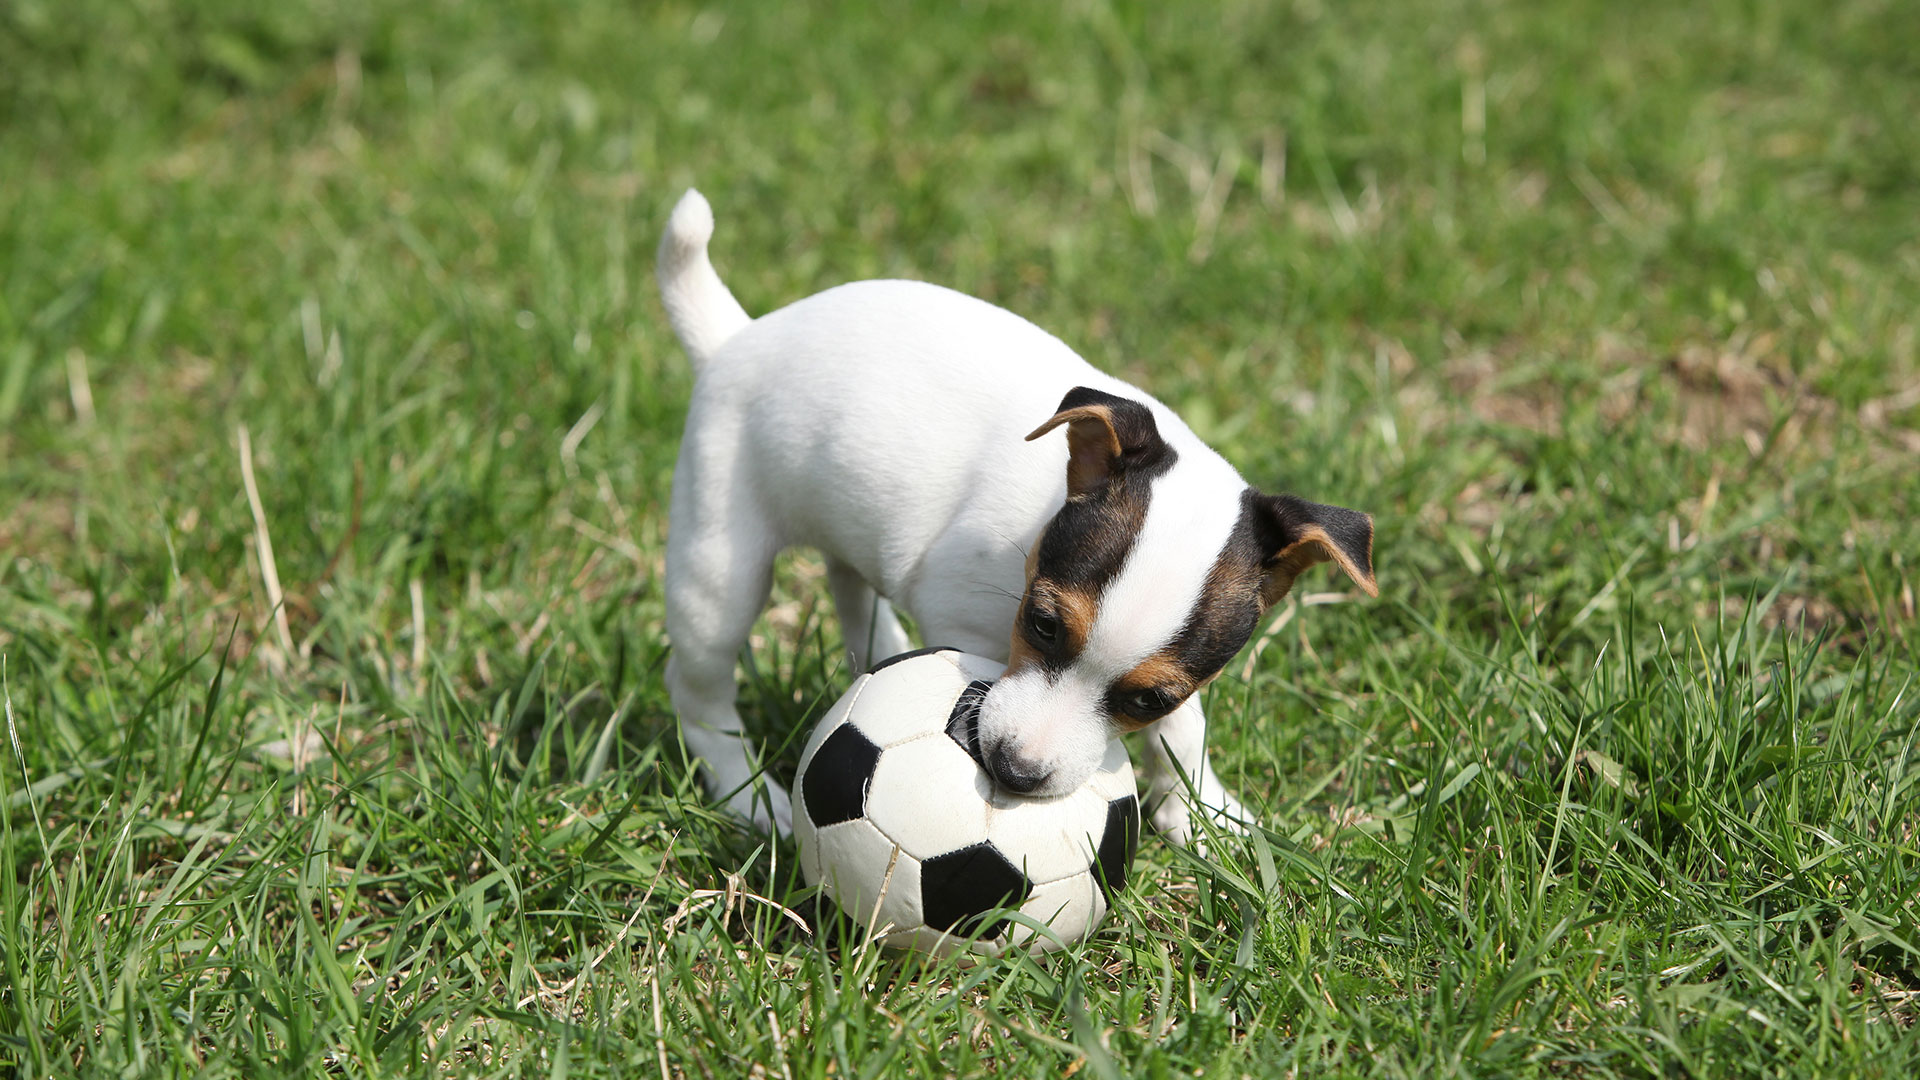 Puppy is playing with soccer ball on field